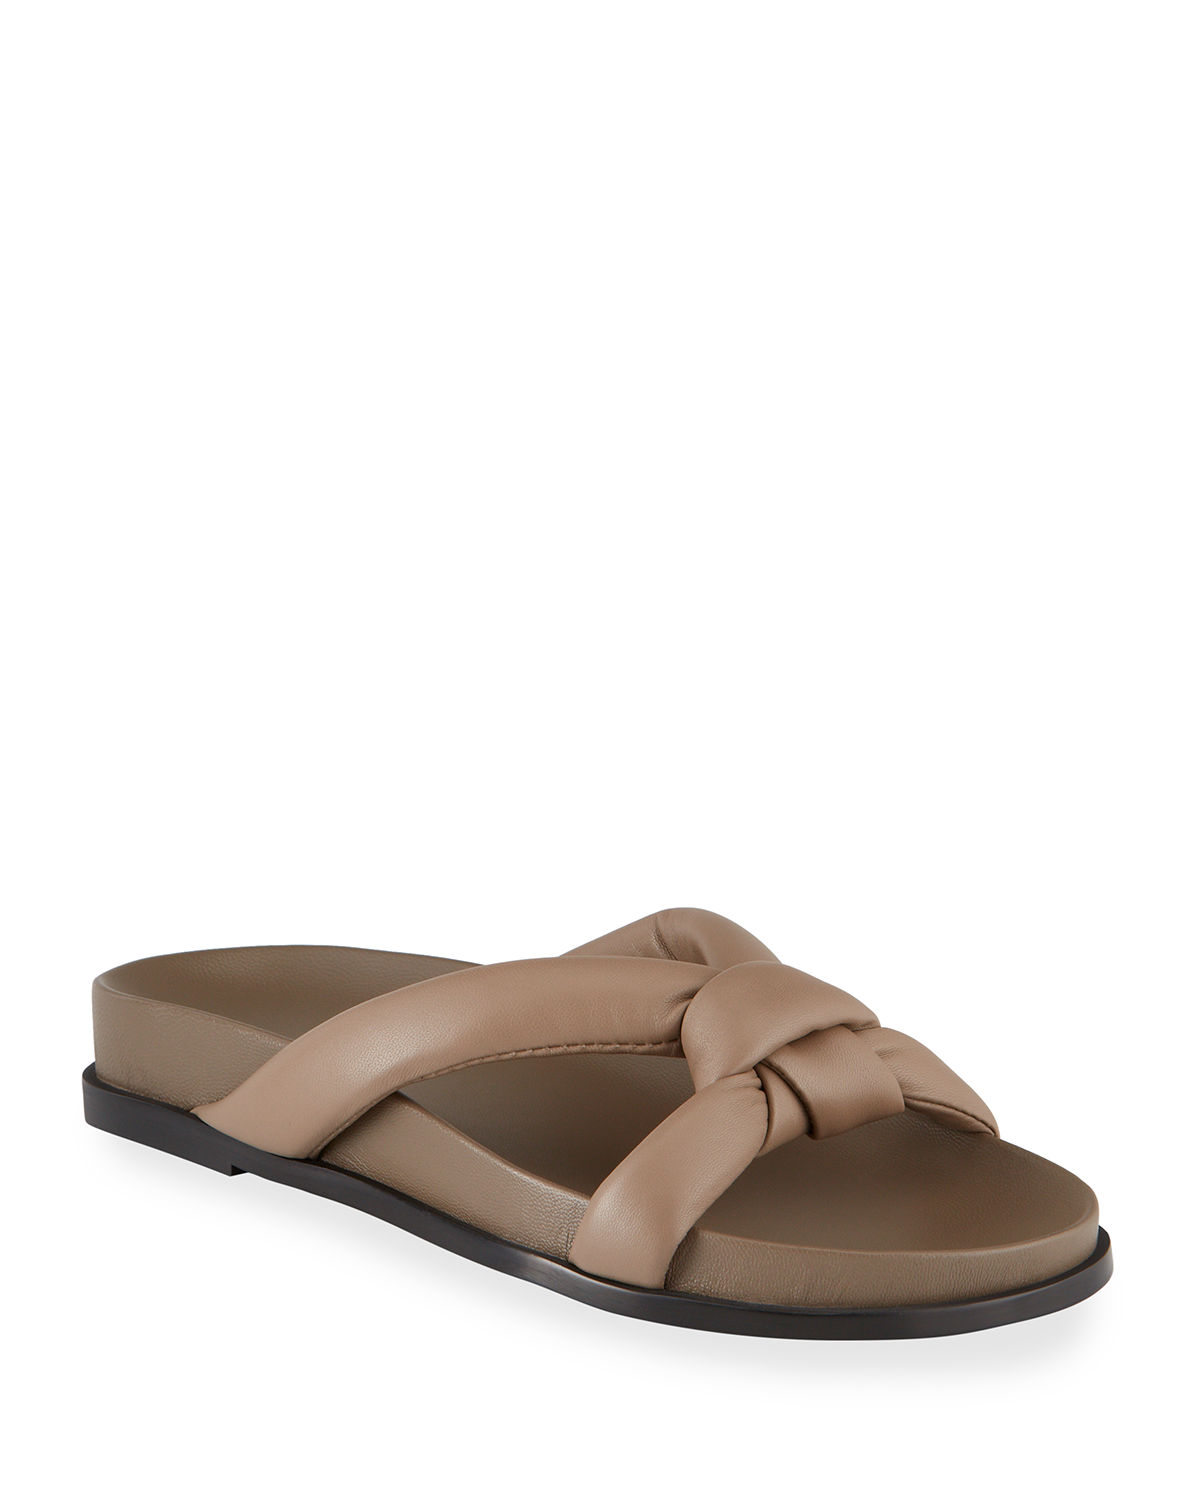 Honore Knotted Flat Slide Sandals